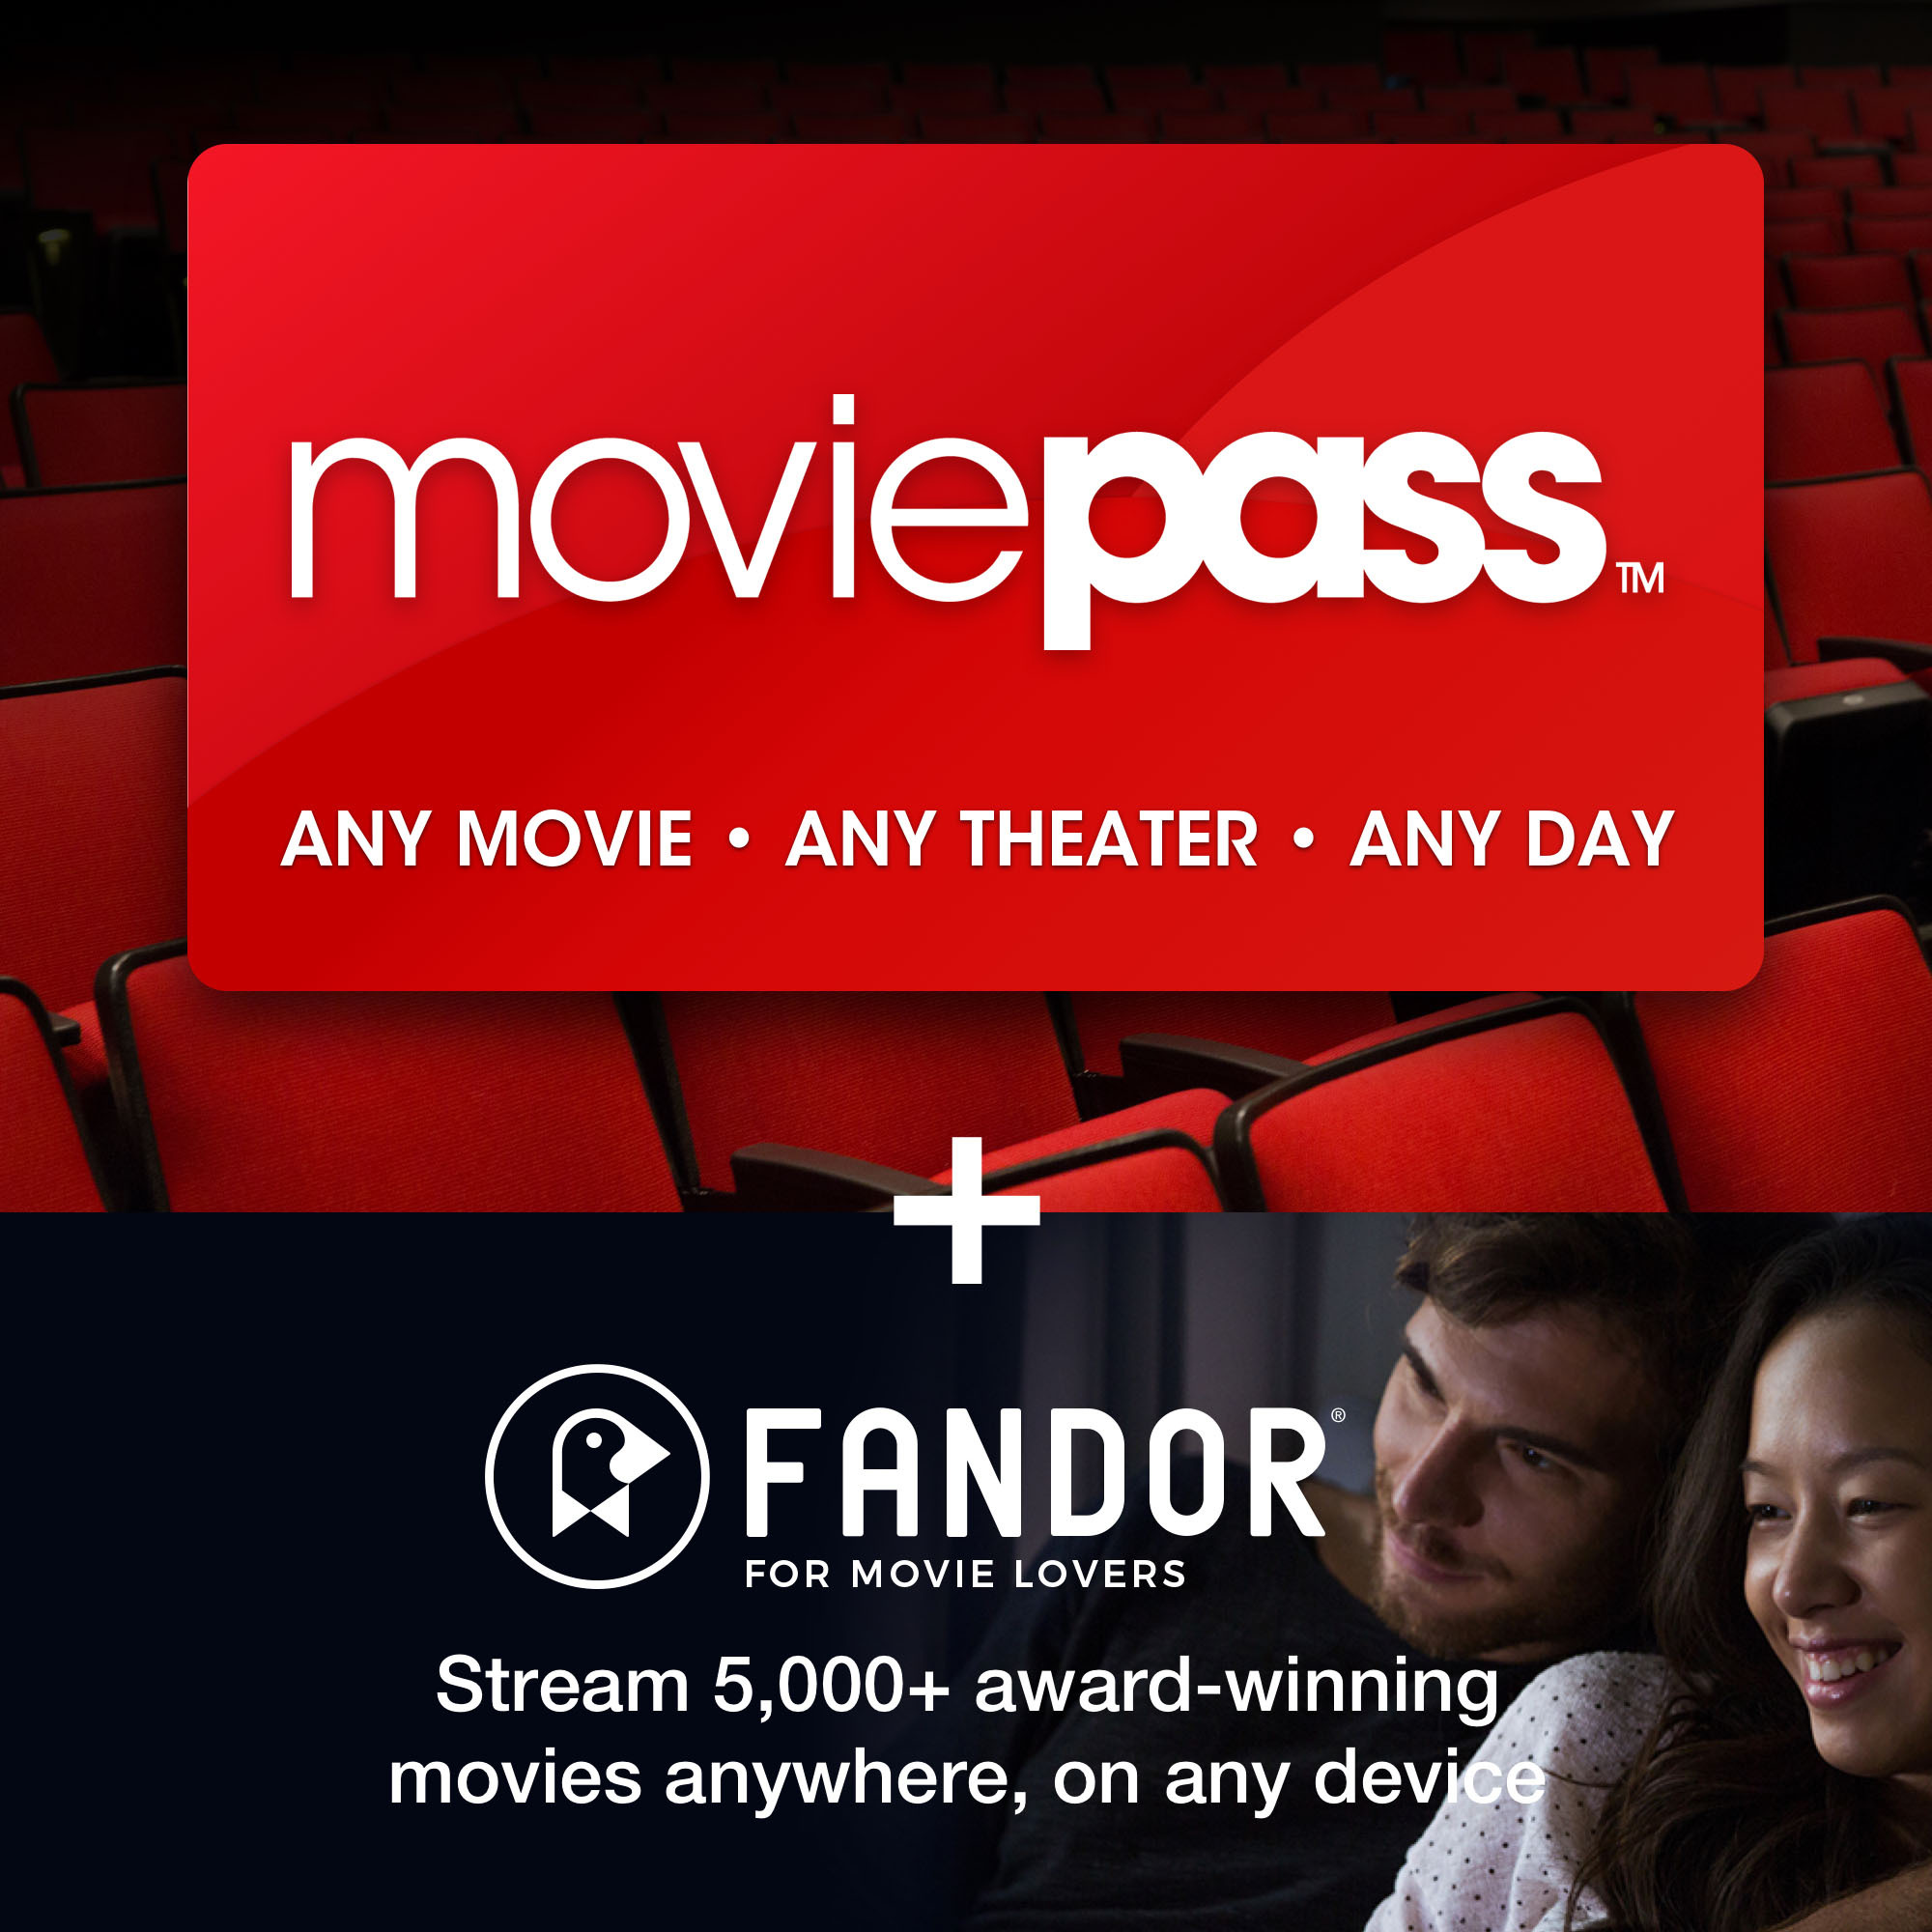 MoviePass and Fandor Partner with Costco on Movie Lovers Package ...